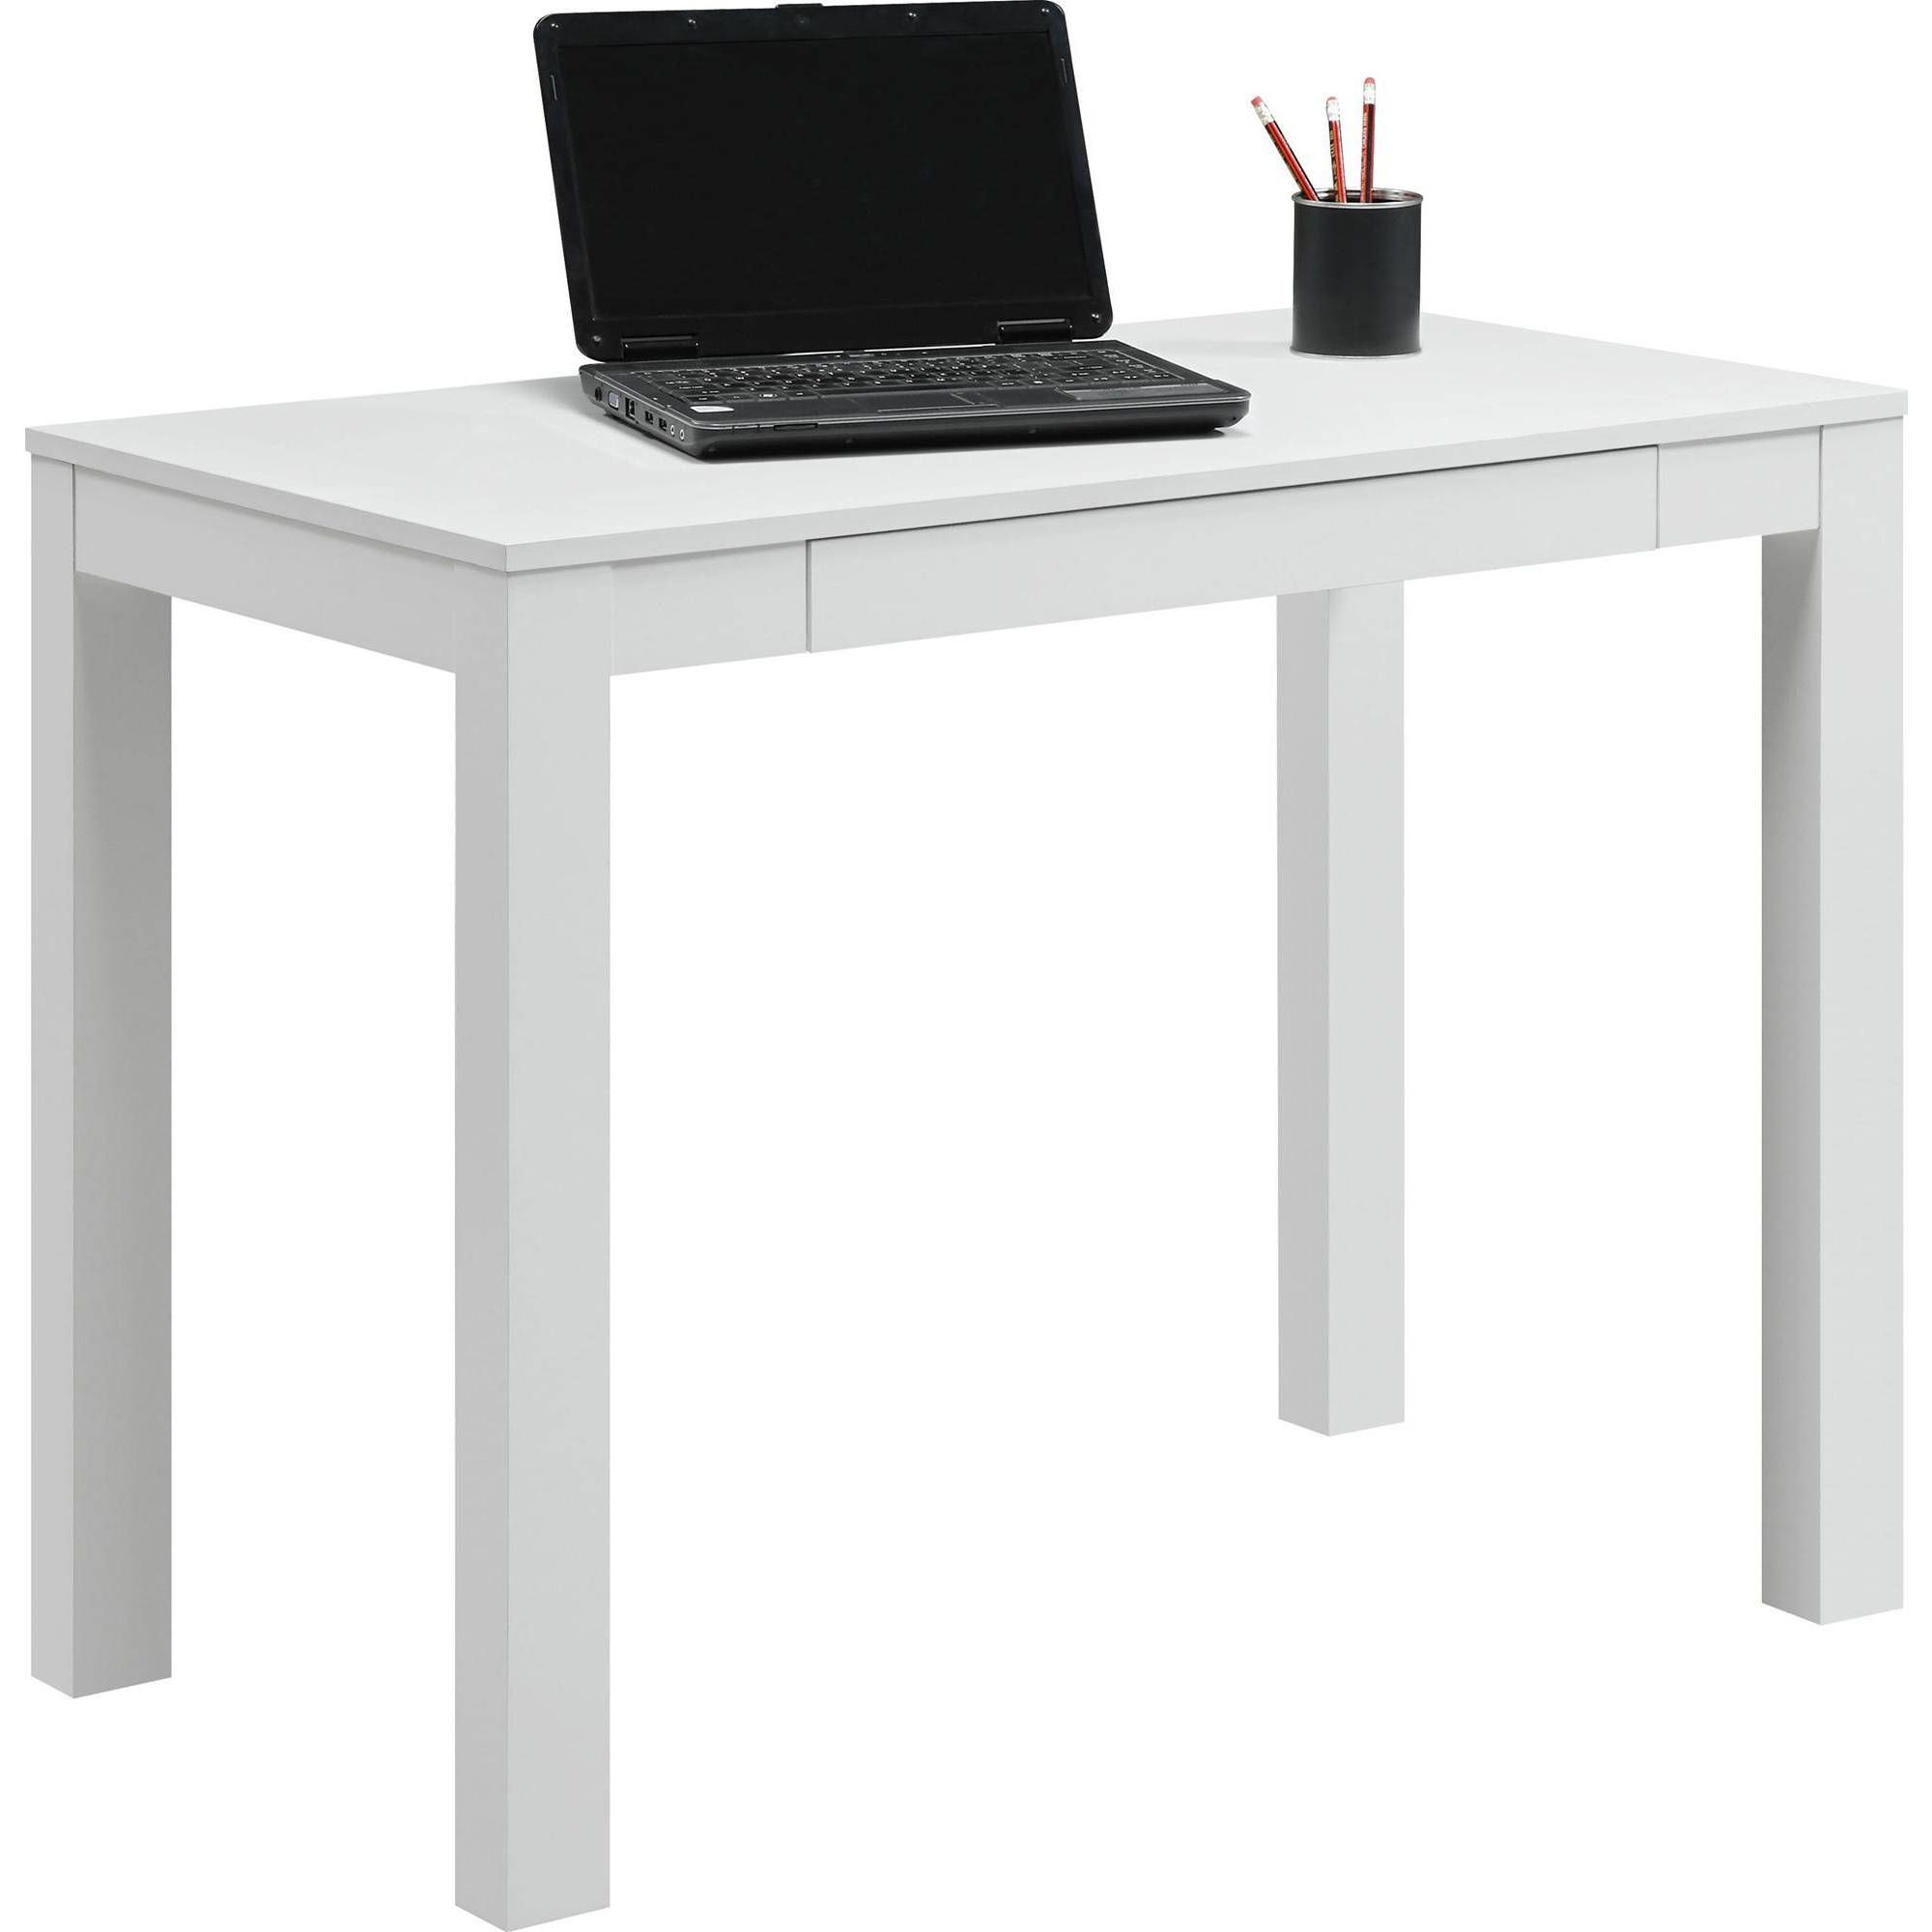 Ameriwood Home Parsons Computer Desk With Drawer White Walmart Com Parsons Desk Writing Desk With Drawers White Computer Desk